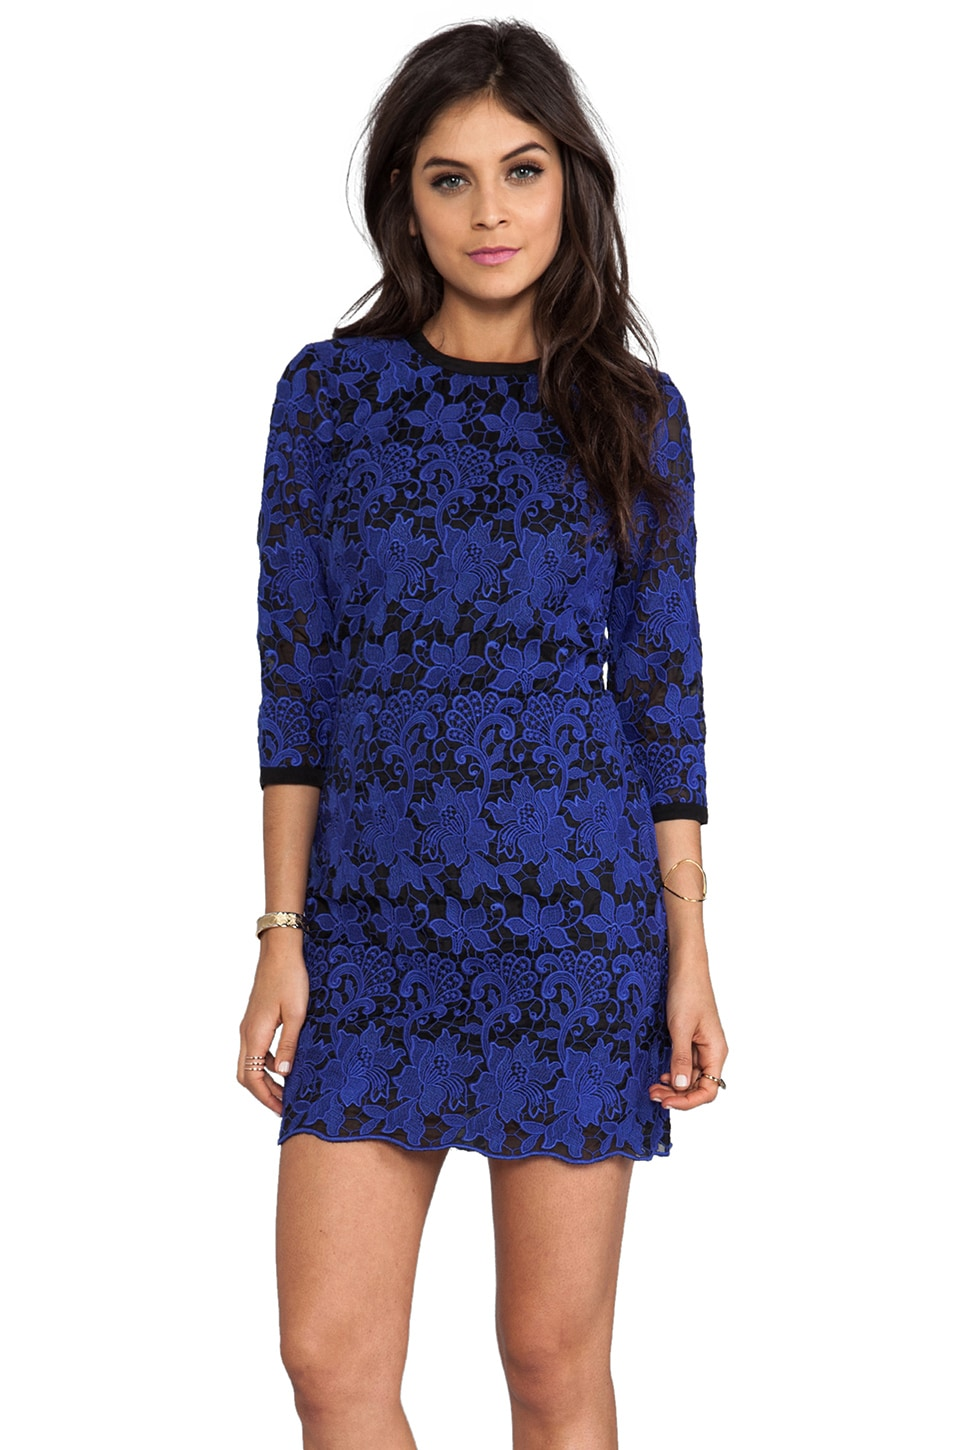 Dolce Vita Amita Pop Out Lace Dress in Blue/Black